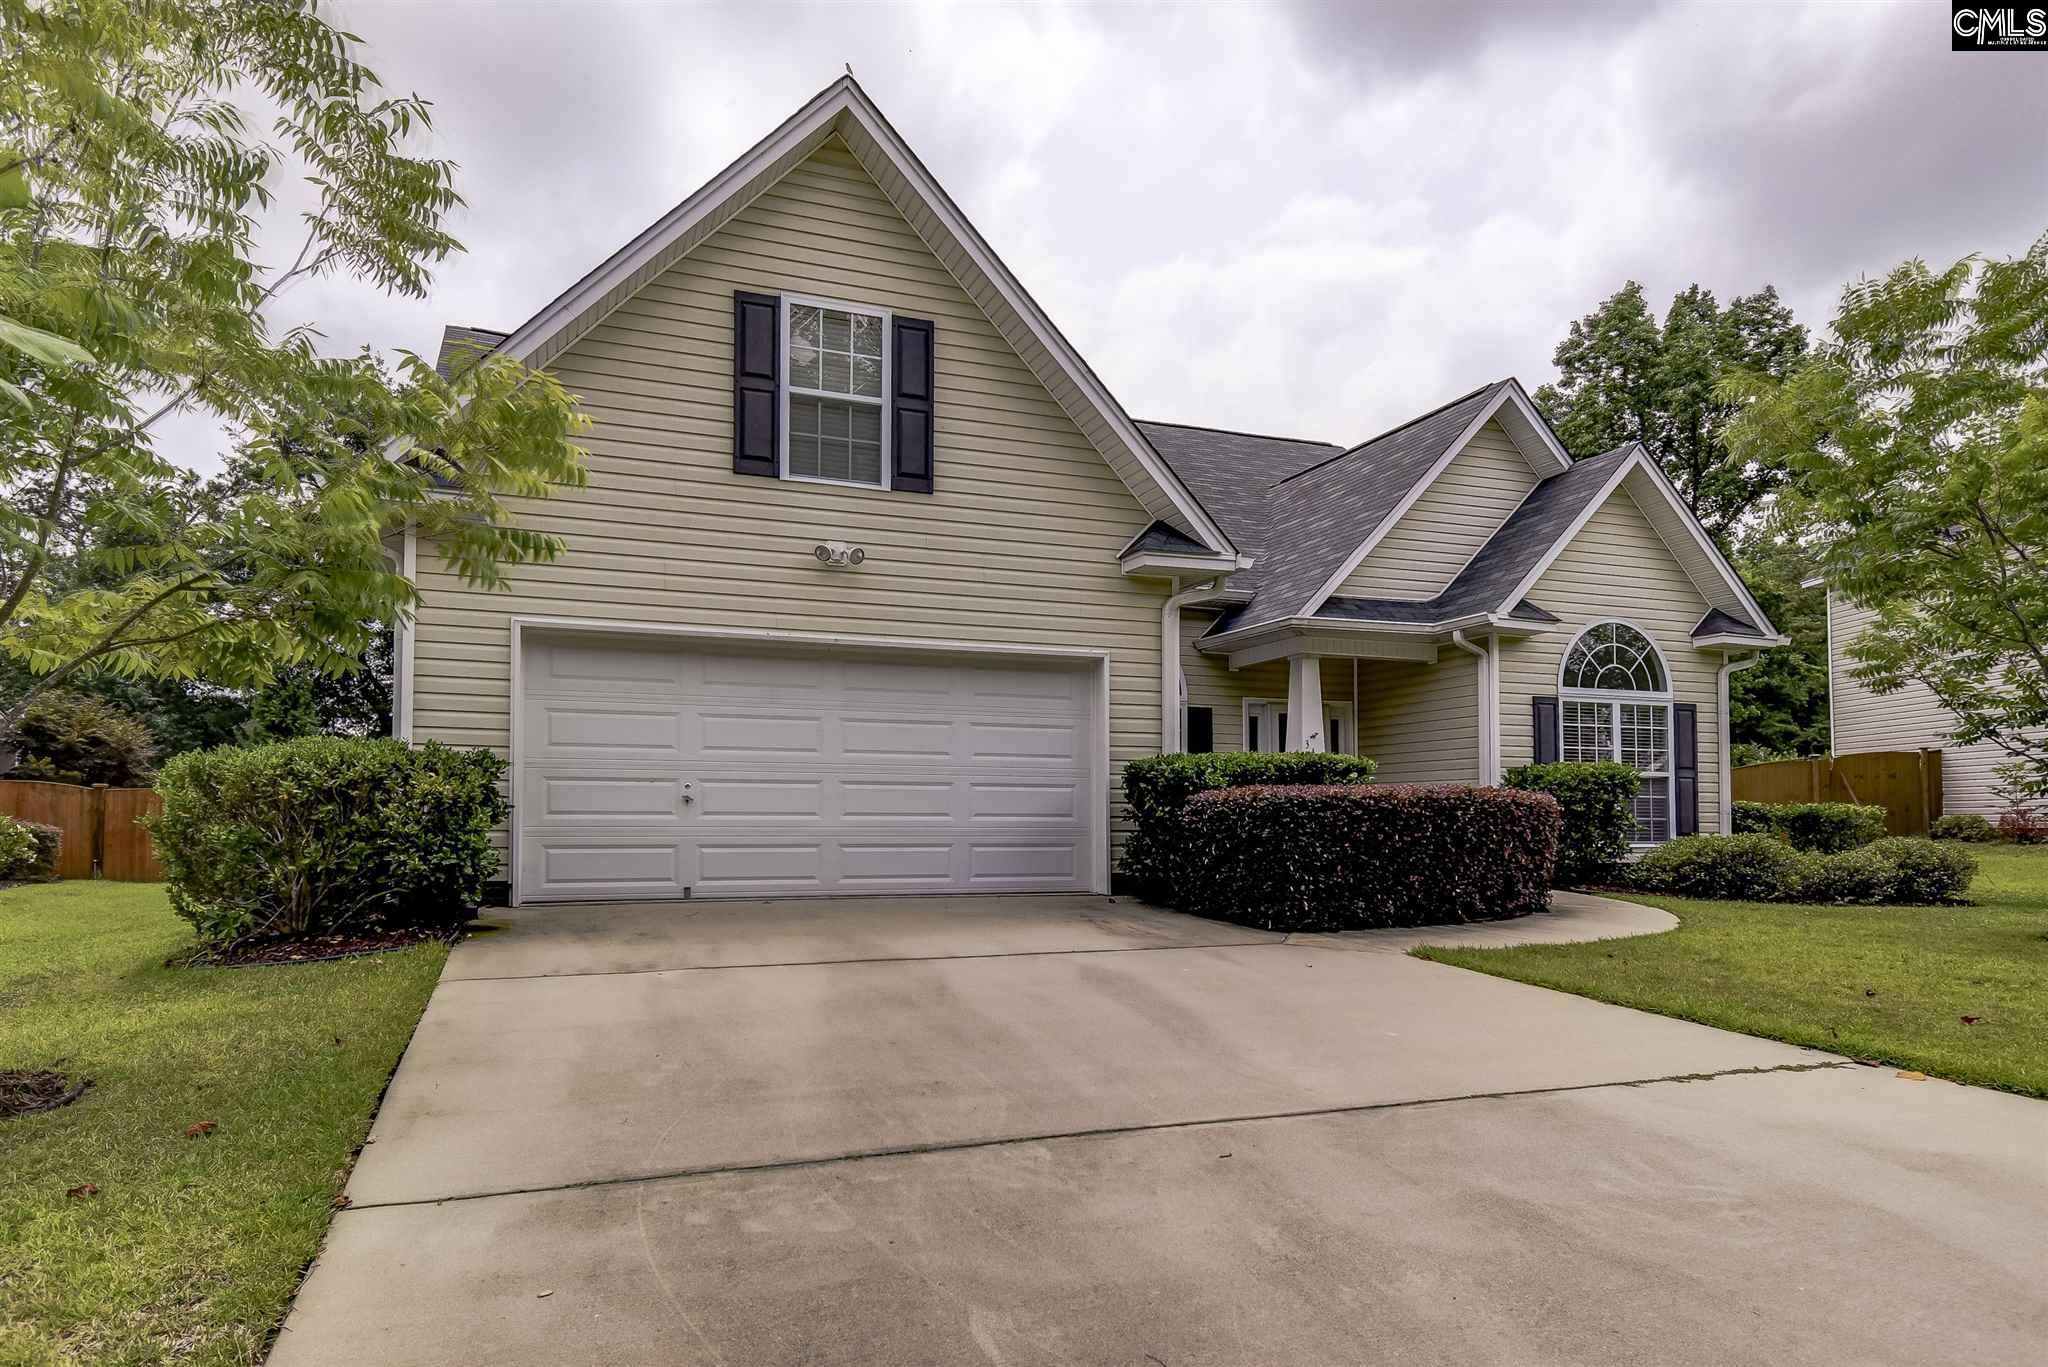 342 Spring Mist Lexington, SC 29072